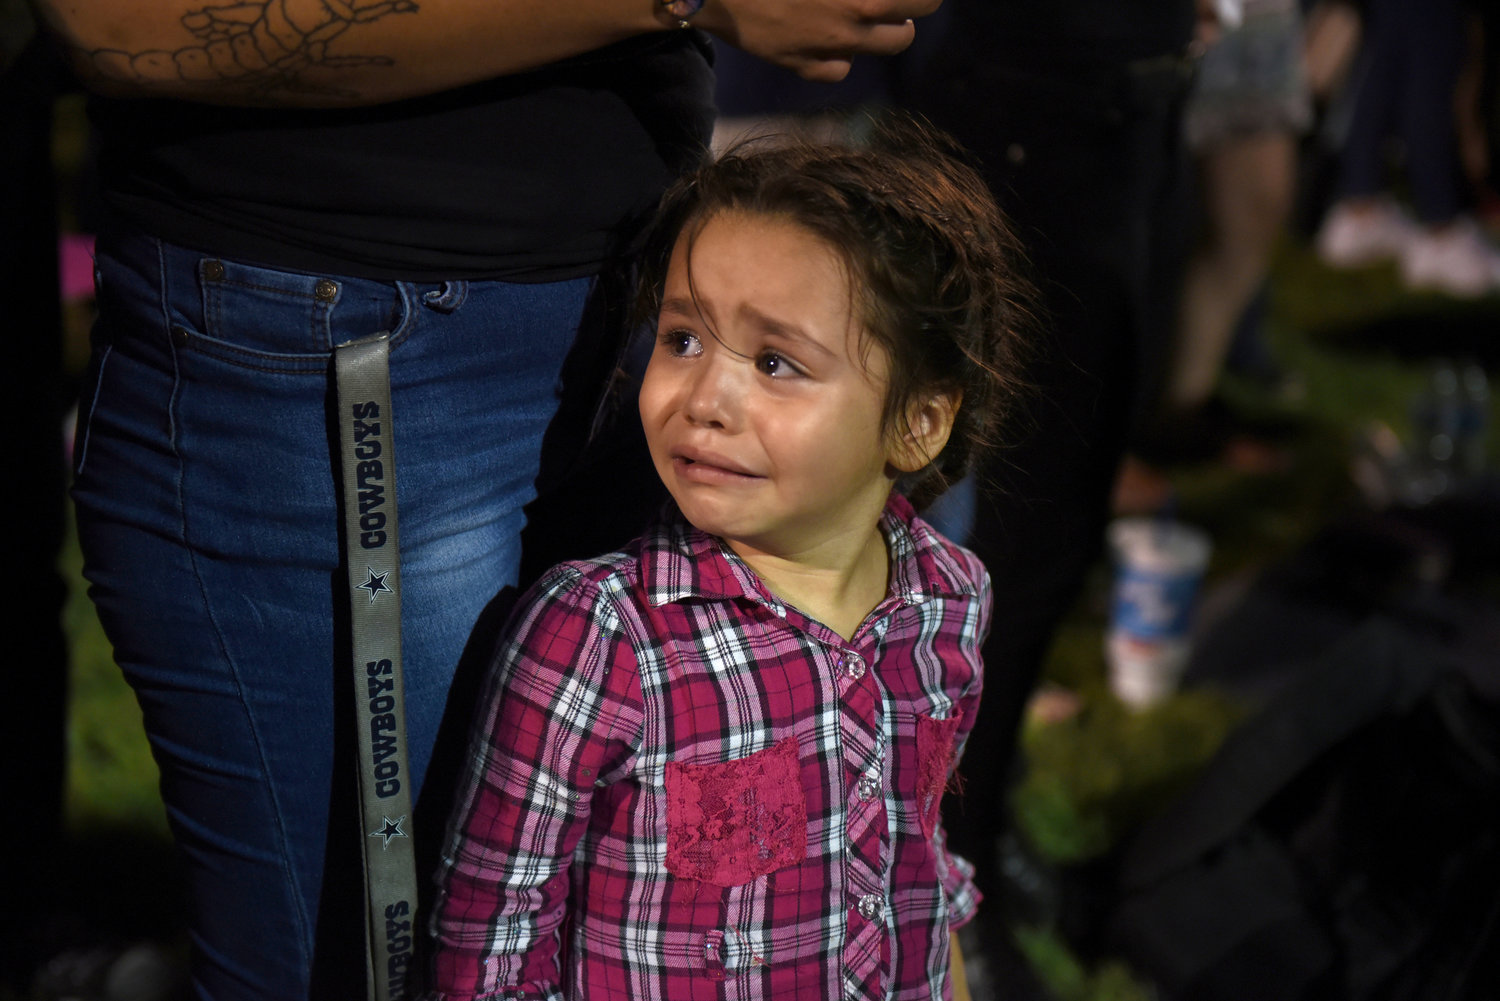 Serenity Lara cries during an Aug. 4 vigil, a day after a mass shooting at a Walmart store in El Paso, Texas.